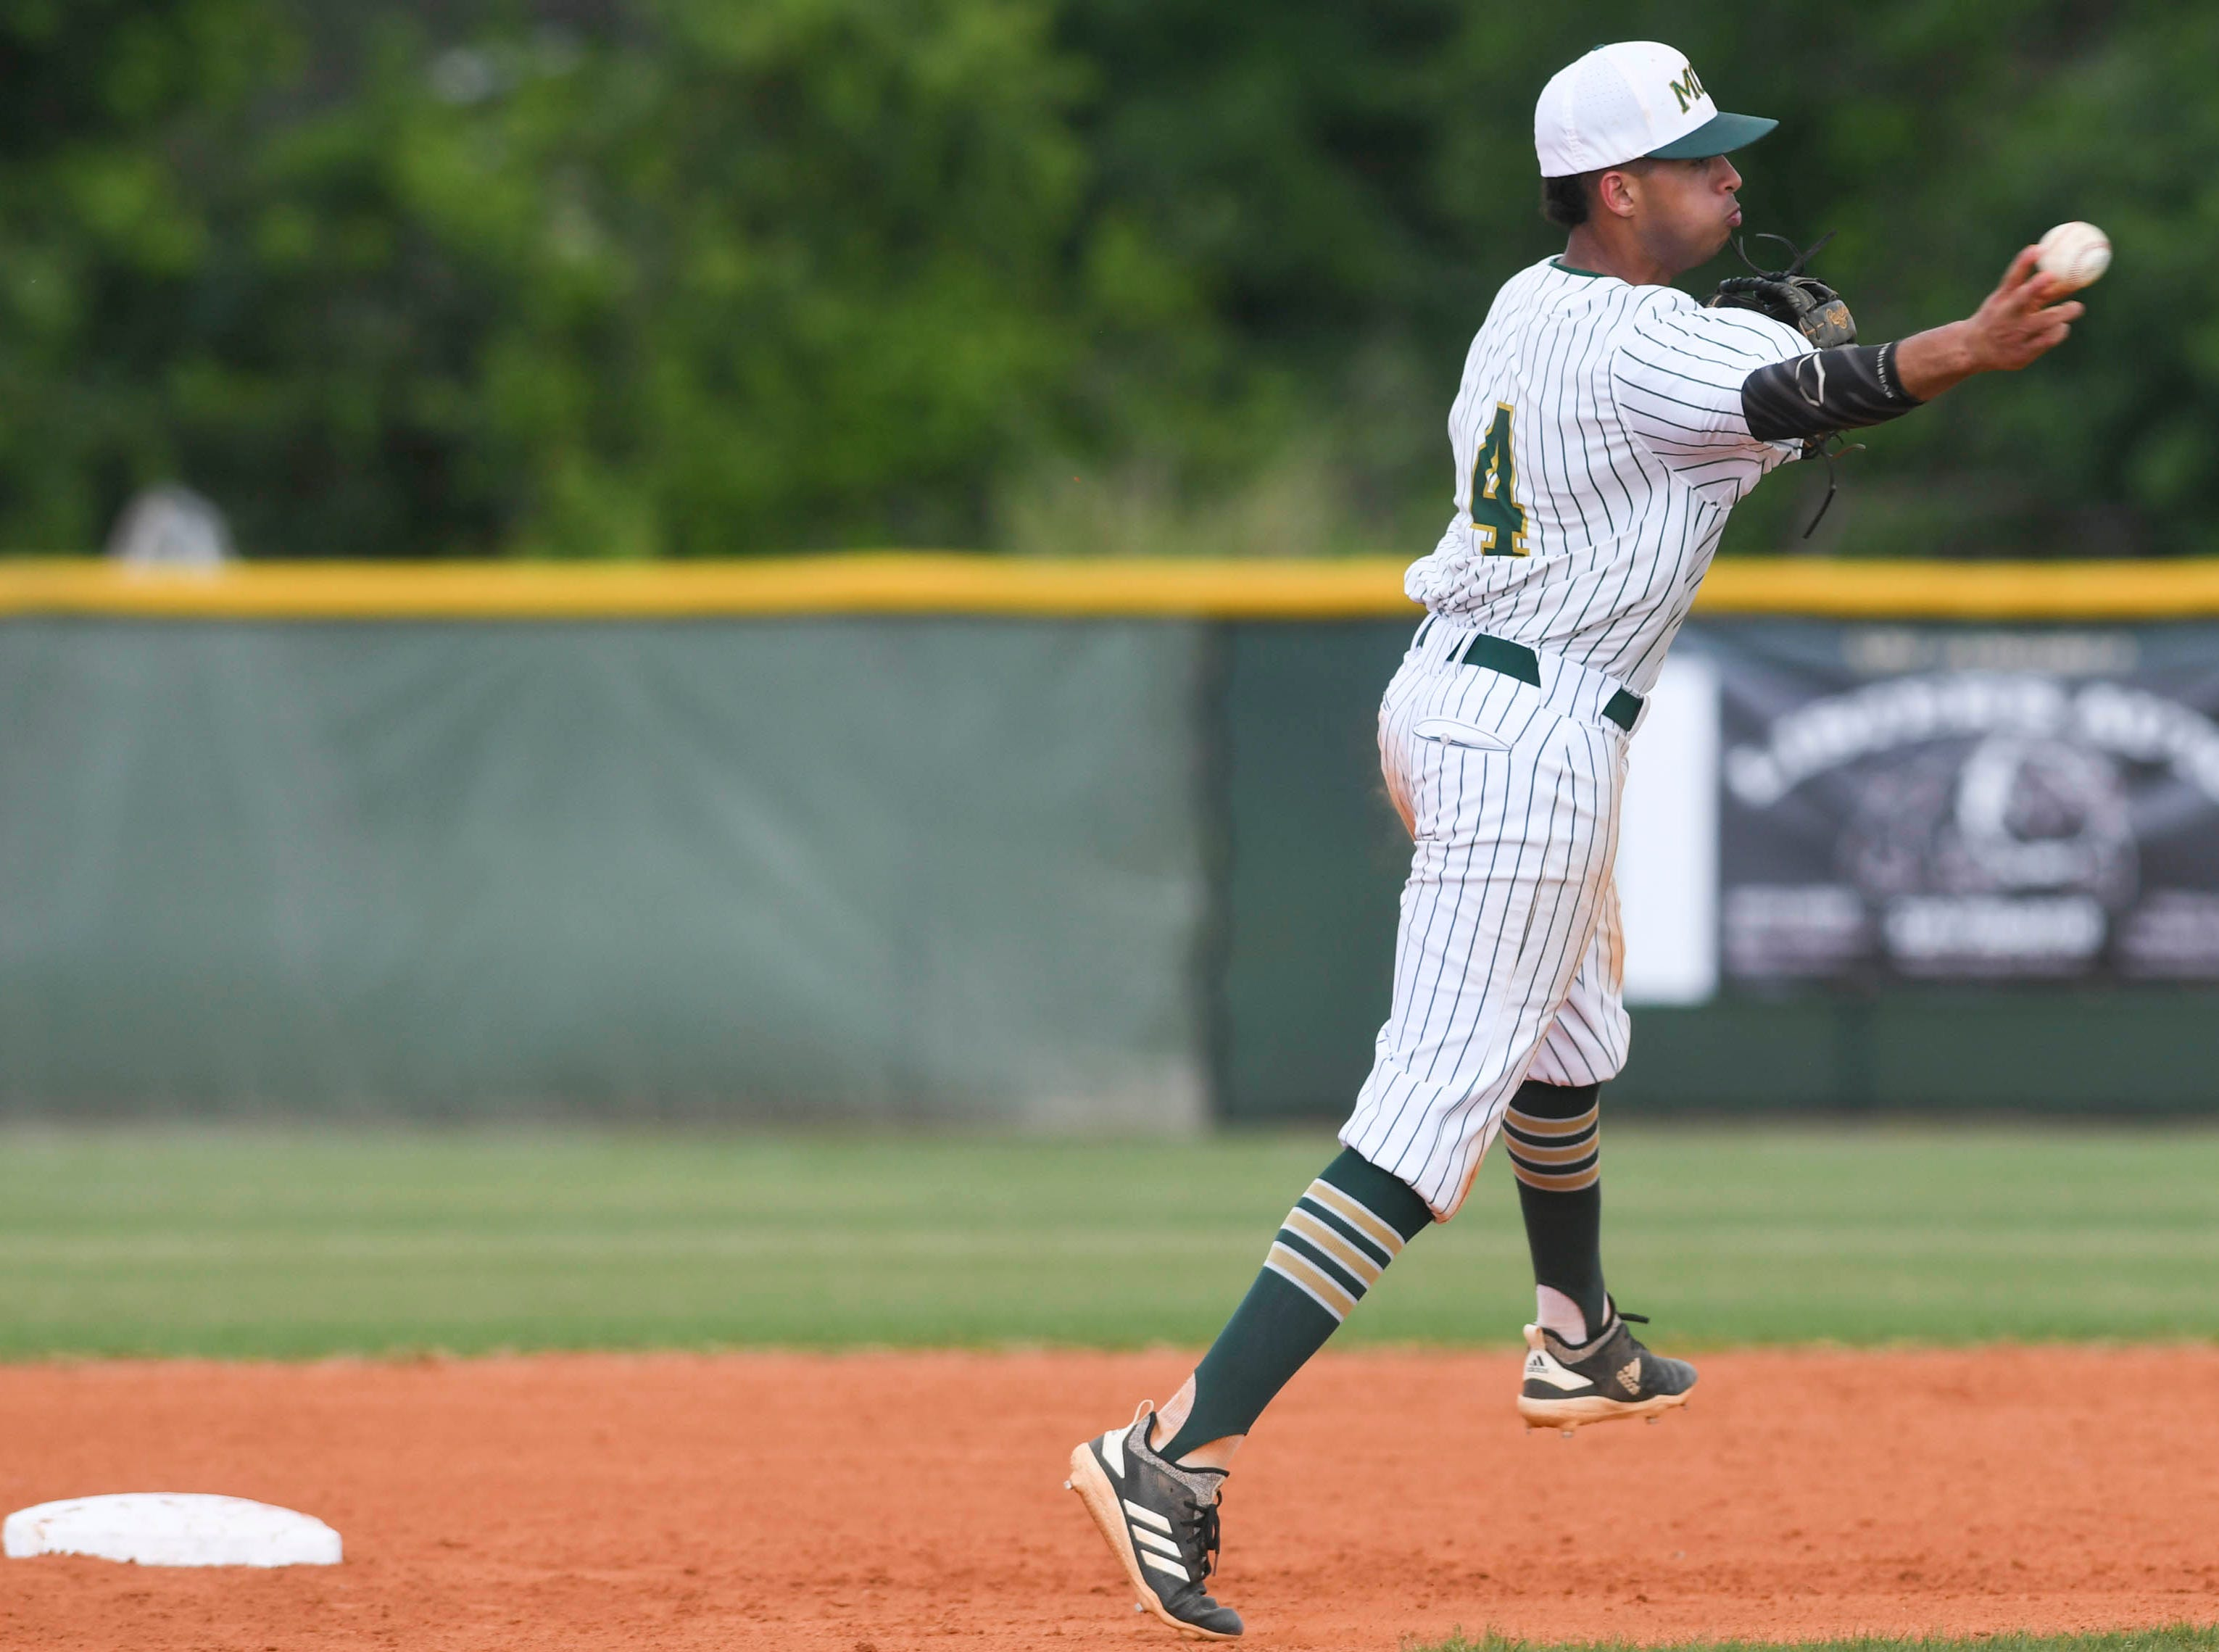 Derick Cantres of Melbourne Central Catholic throws out a baserunner during Tuesday's game against Satellite.